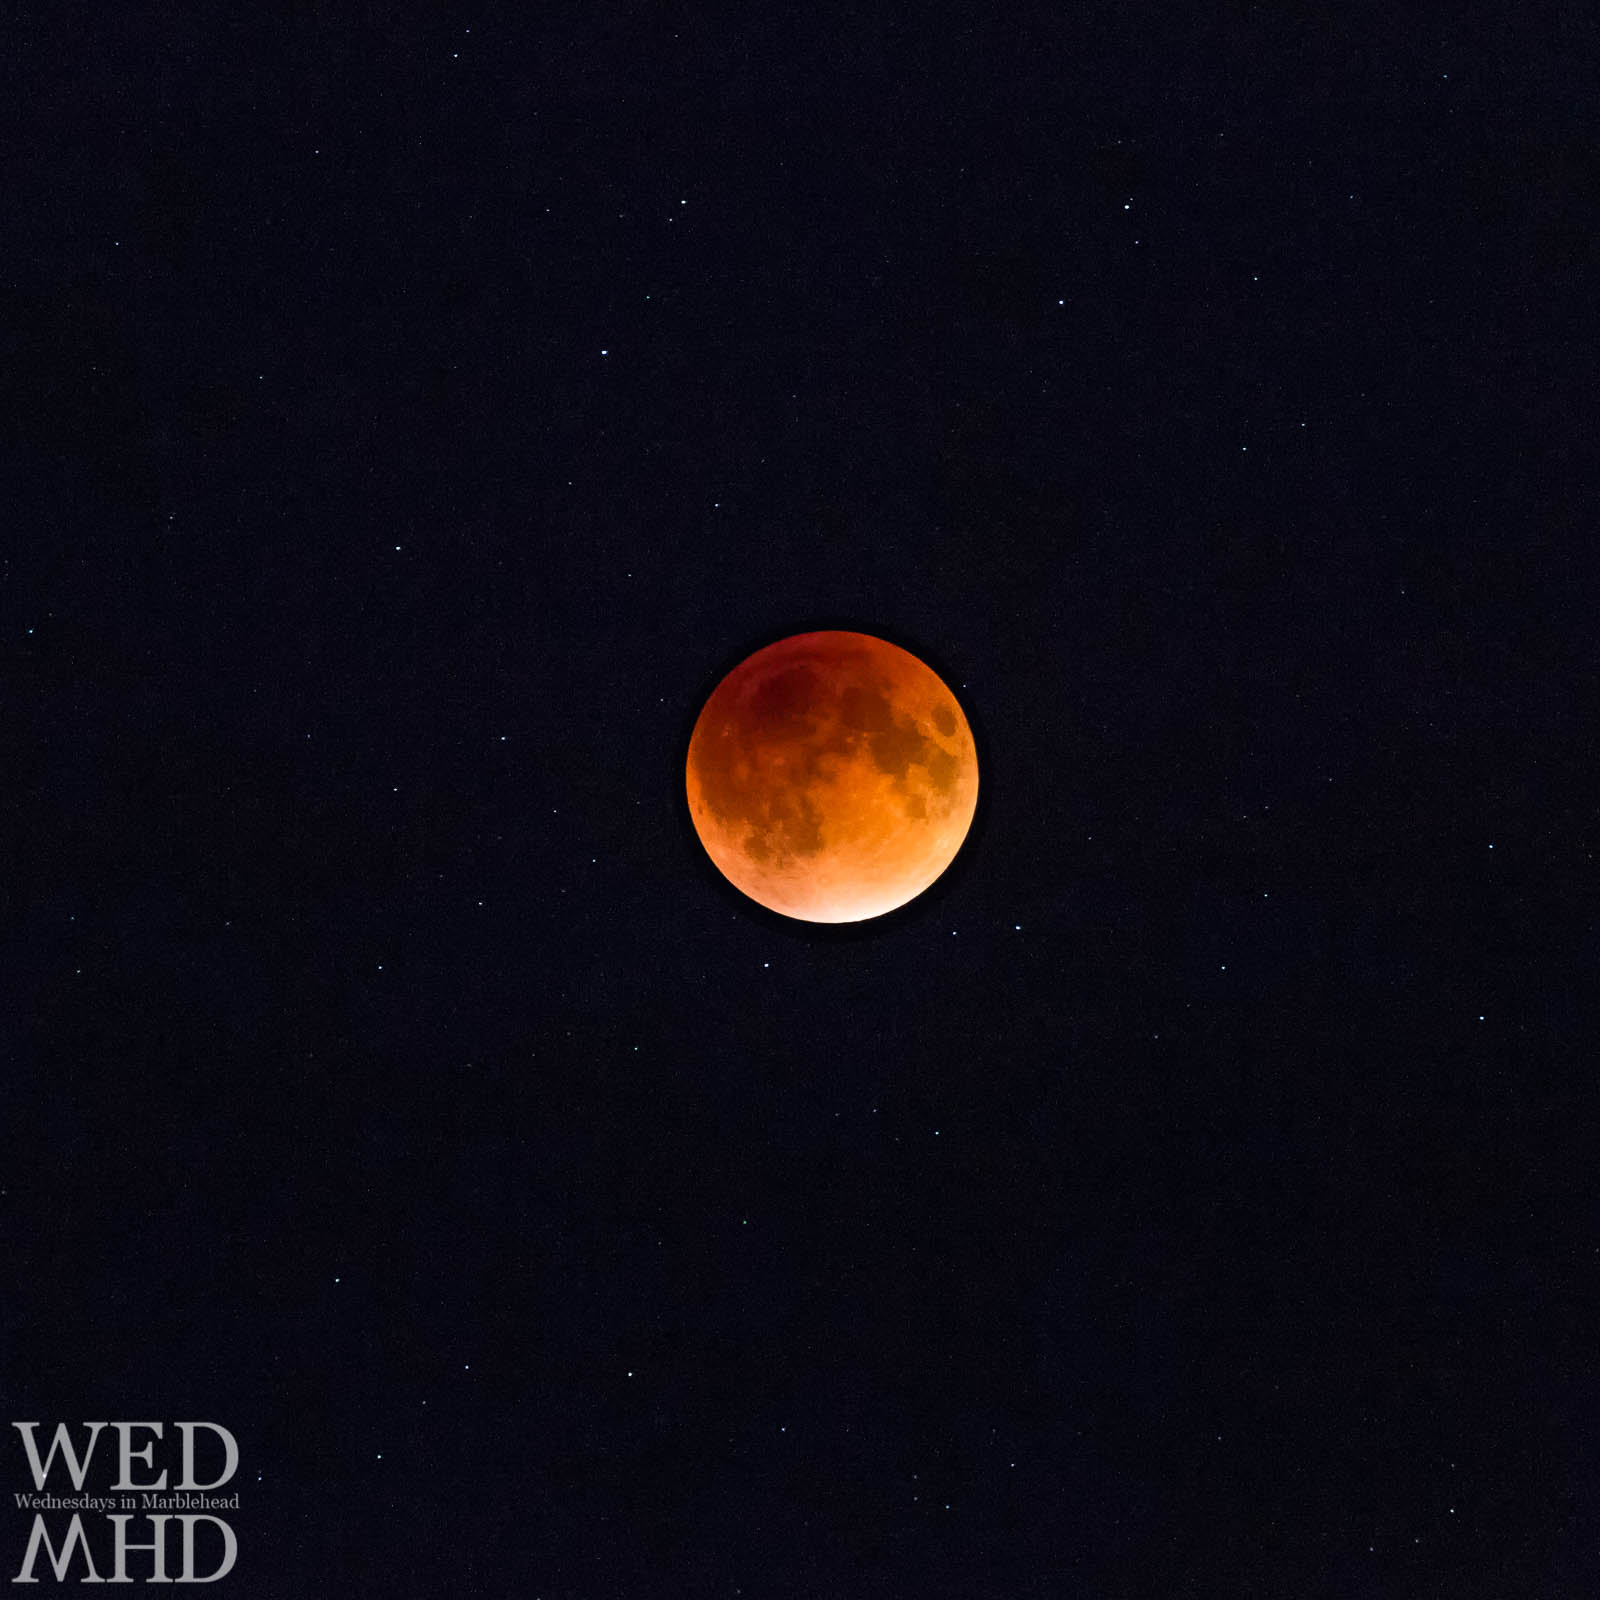 The last lunar eclipse took place on September 27, 2015 and featured a blood red supermoon in the sky over Marblehead